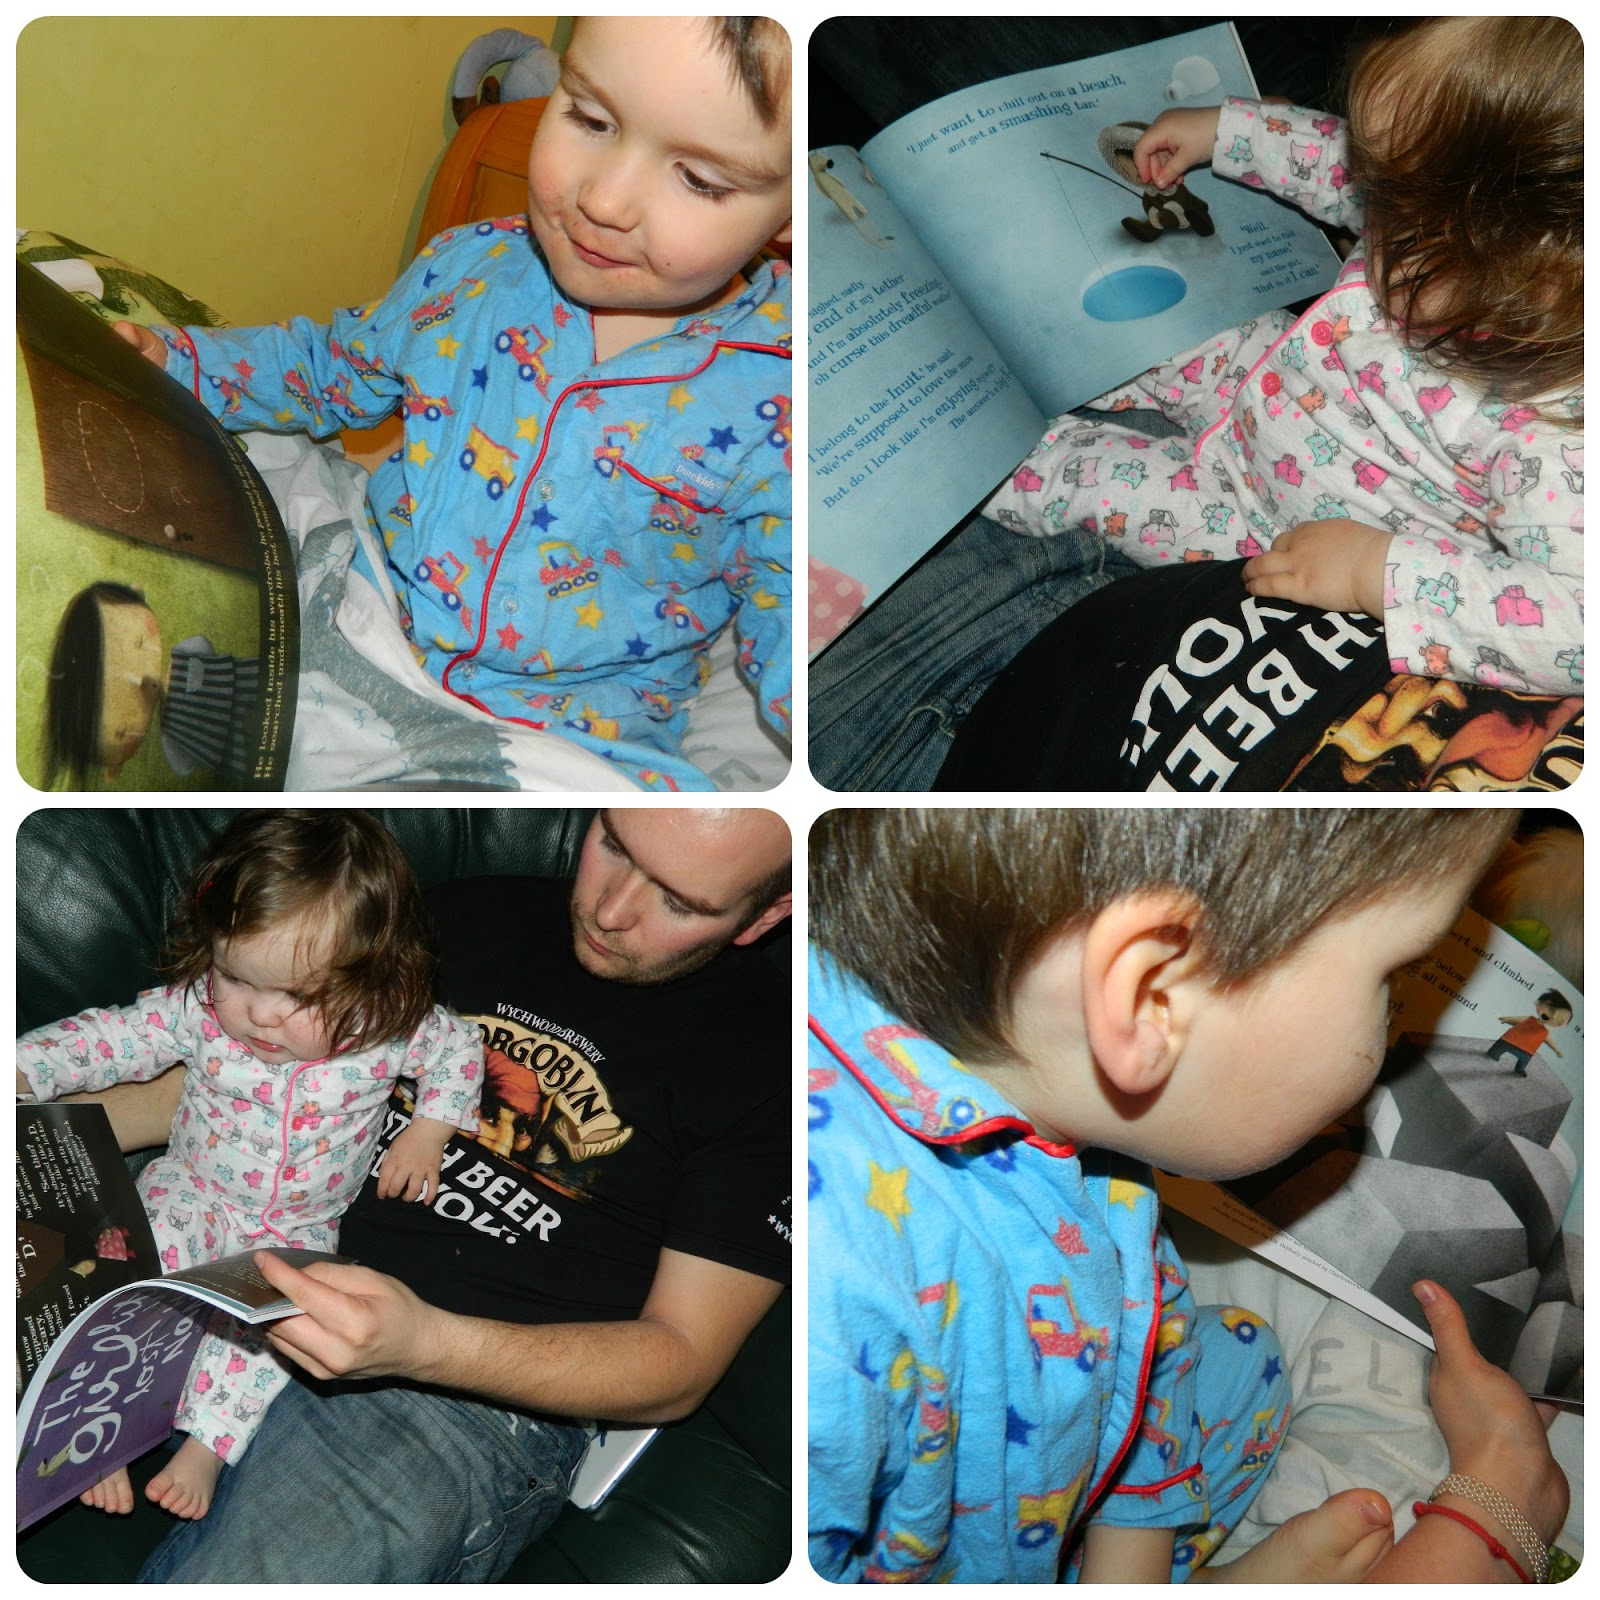 Reading Lost My Name Books - The Little Boy who lost his name and the little girl who lost her name